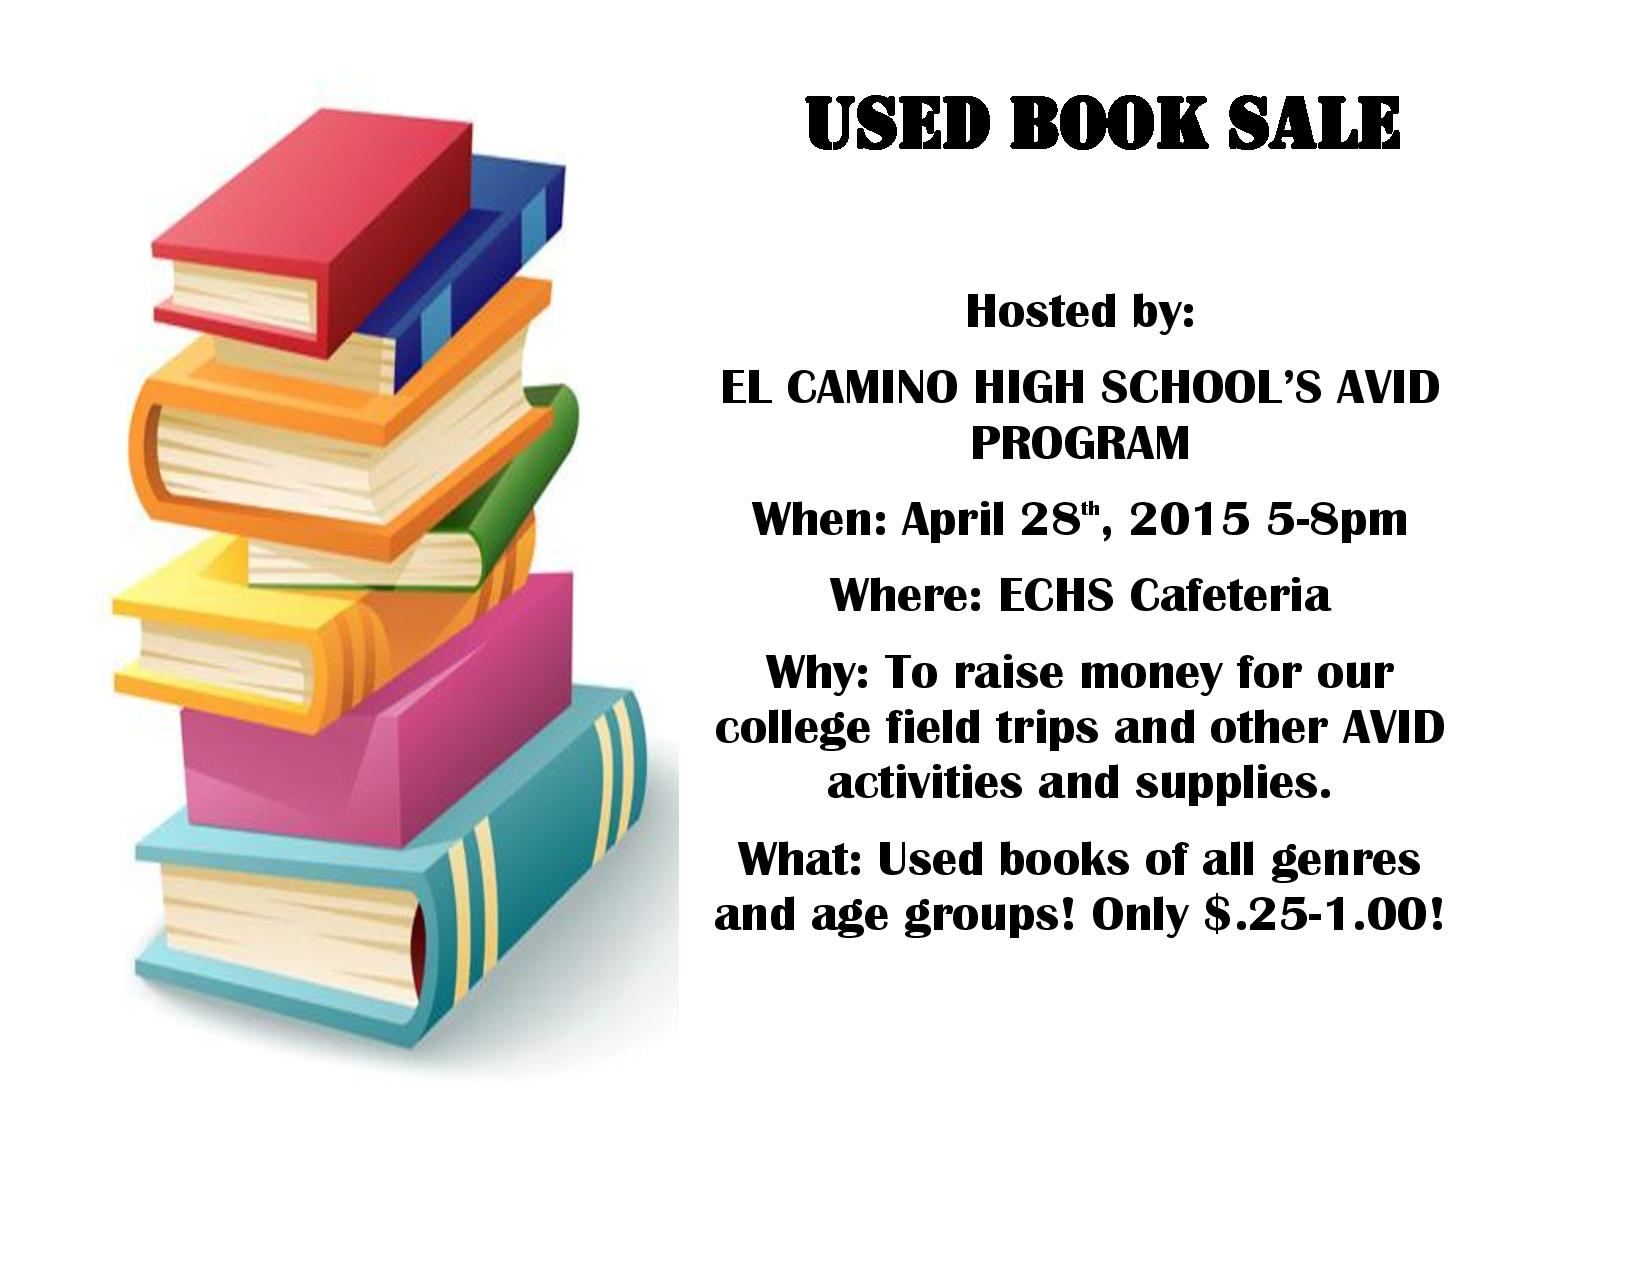 College Books For Sale >> El Camino High School Students Fund Raise For College Trips